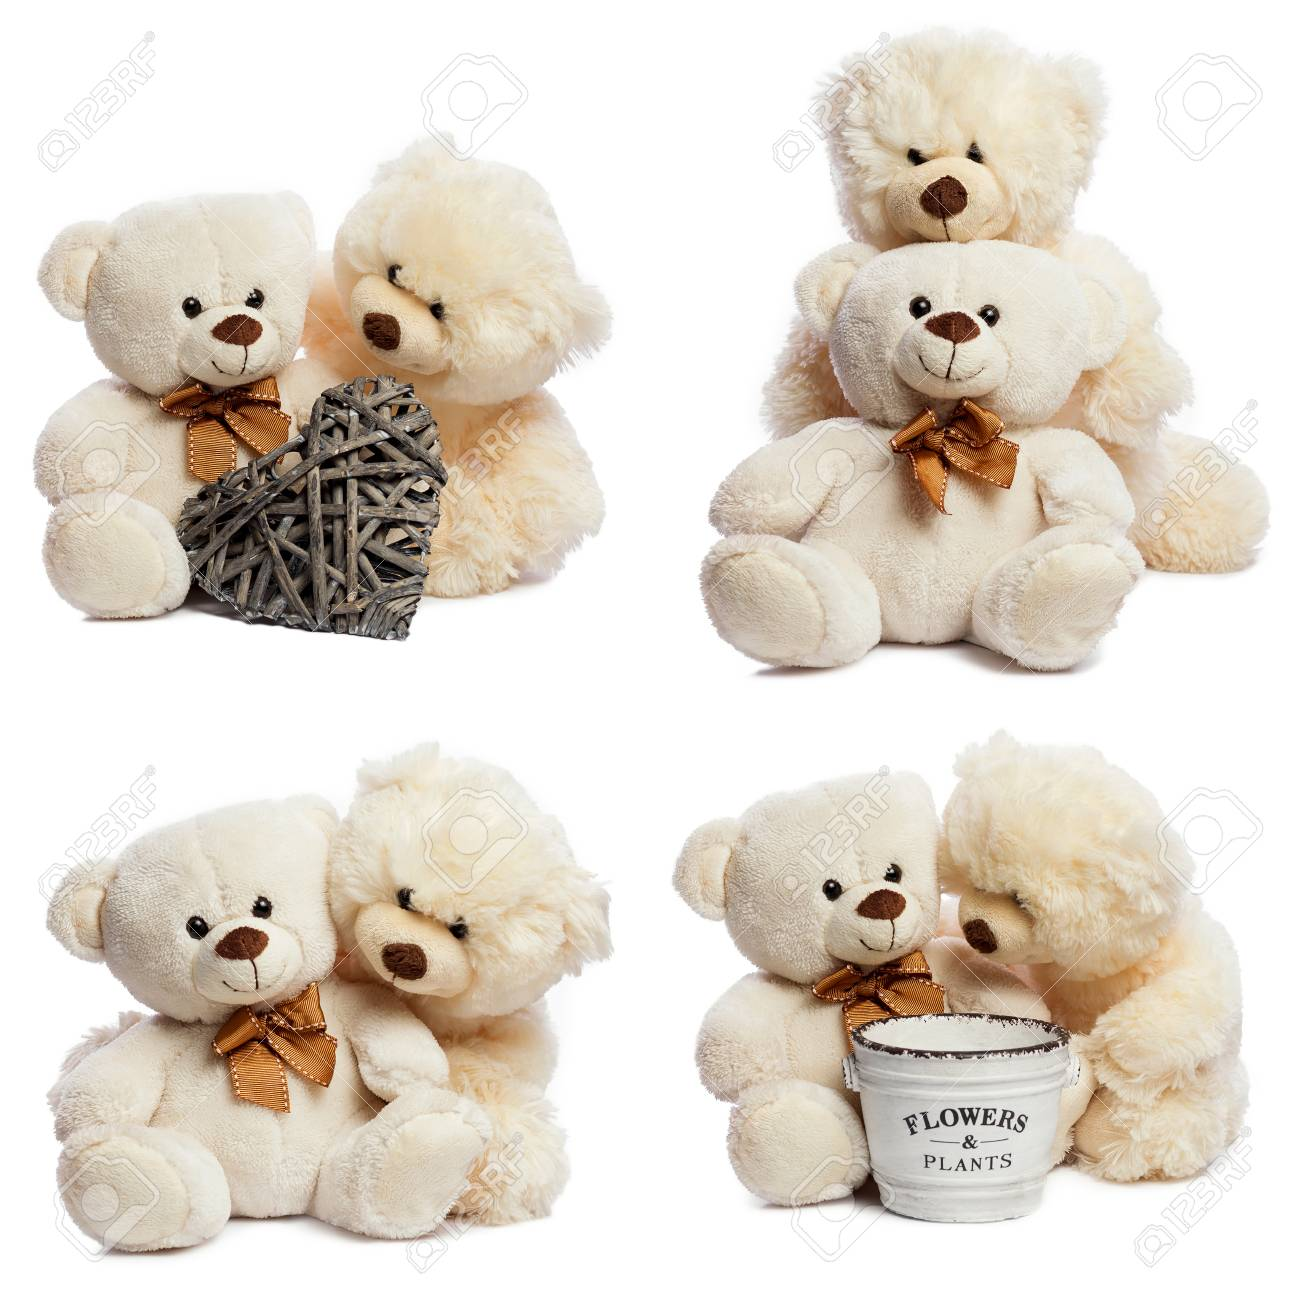 Teddy Bear Couple Images Hd The Best Hd Wallpaper